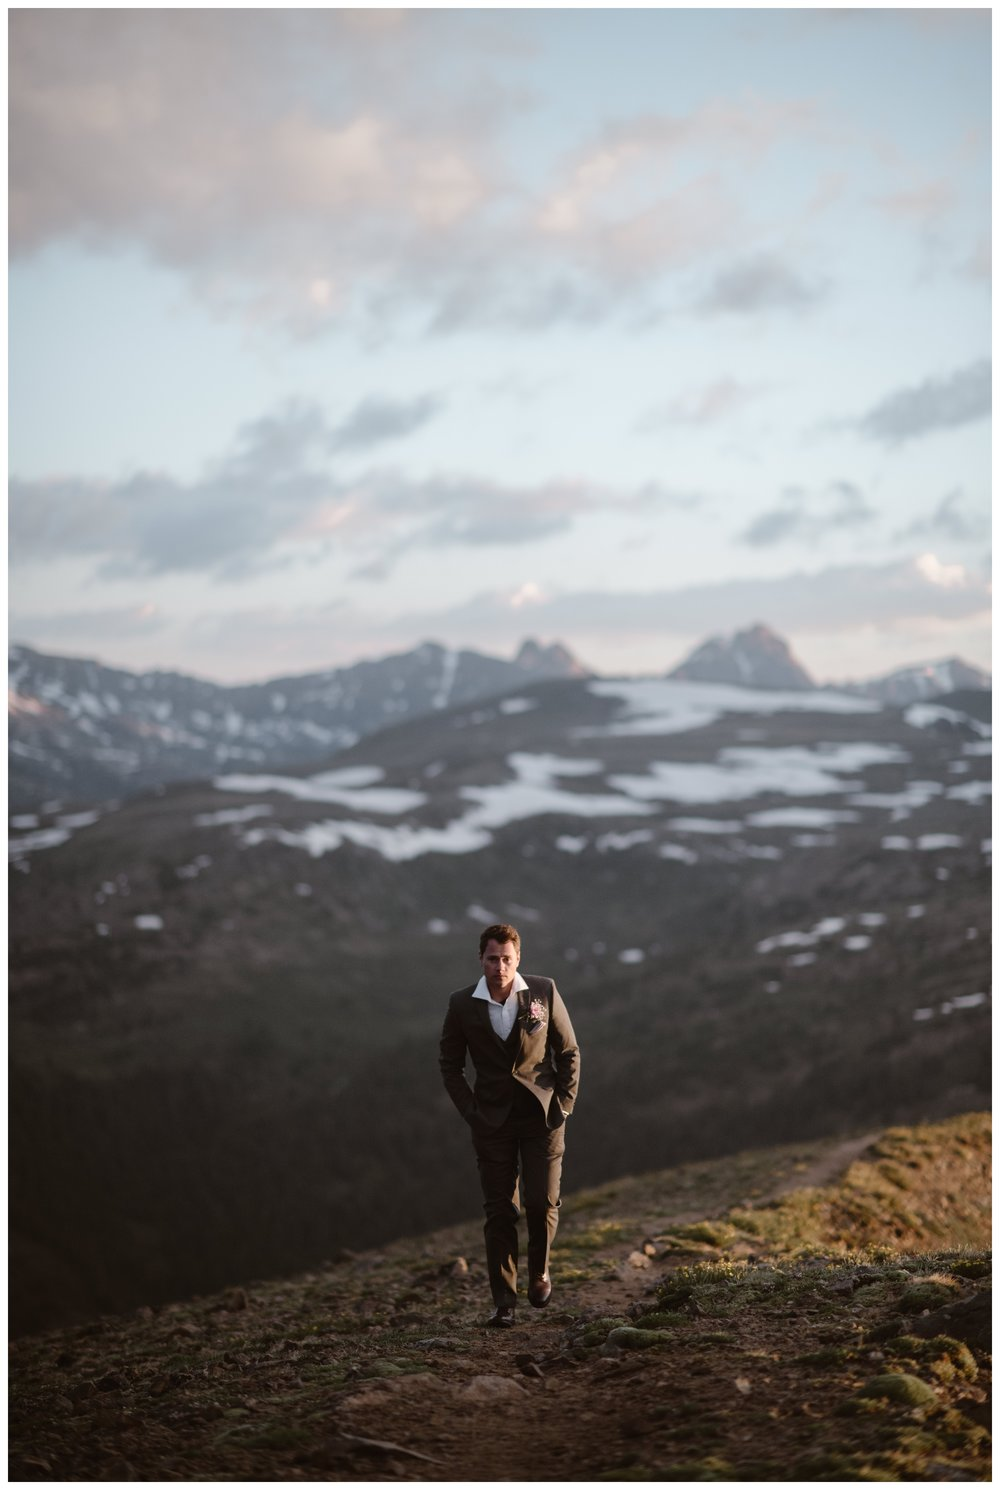 Vasily walks along the ridge above Independence Pass, outside Aspen, Colorado as he waits for his fiance so they can have an intimate first look at more than 12,000 feet elevation. Photo by Maddie Mae, Adventure Instead.